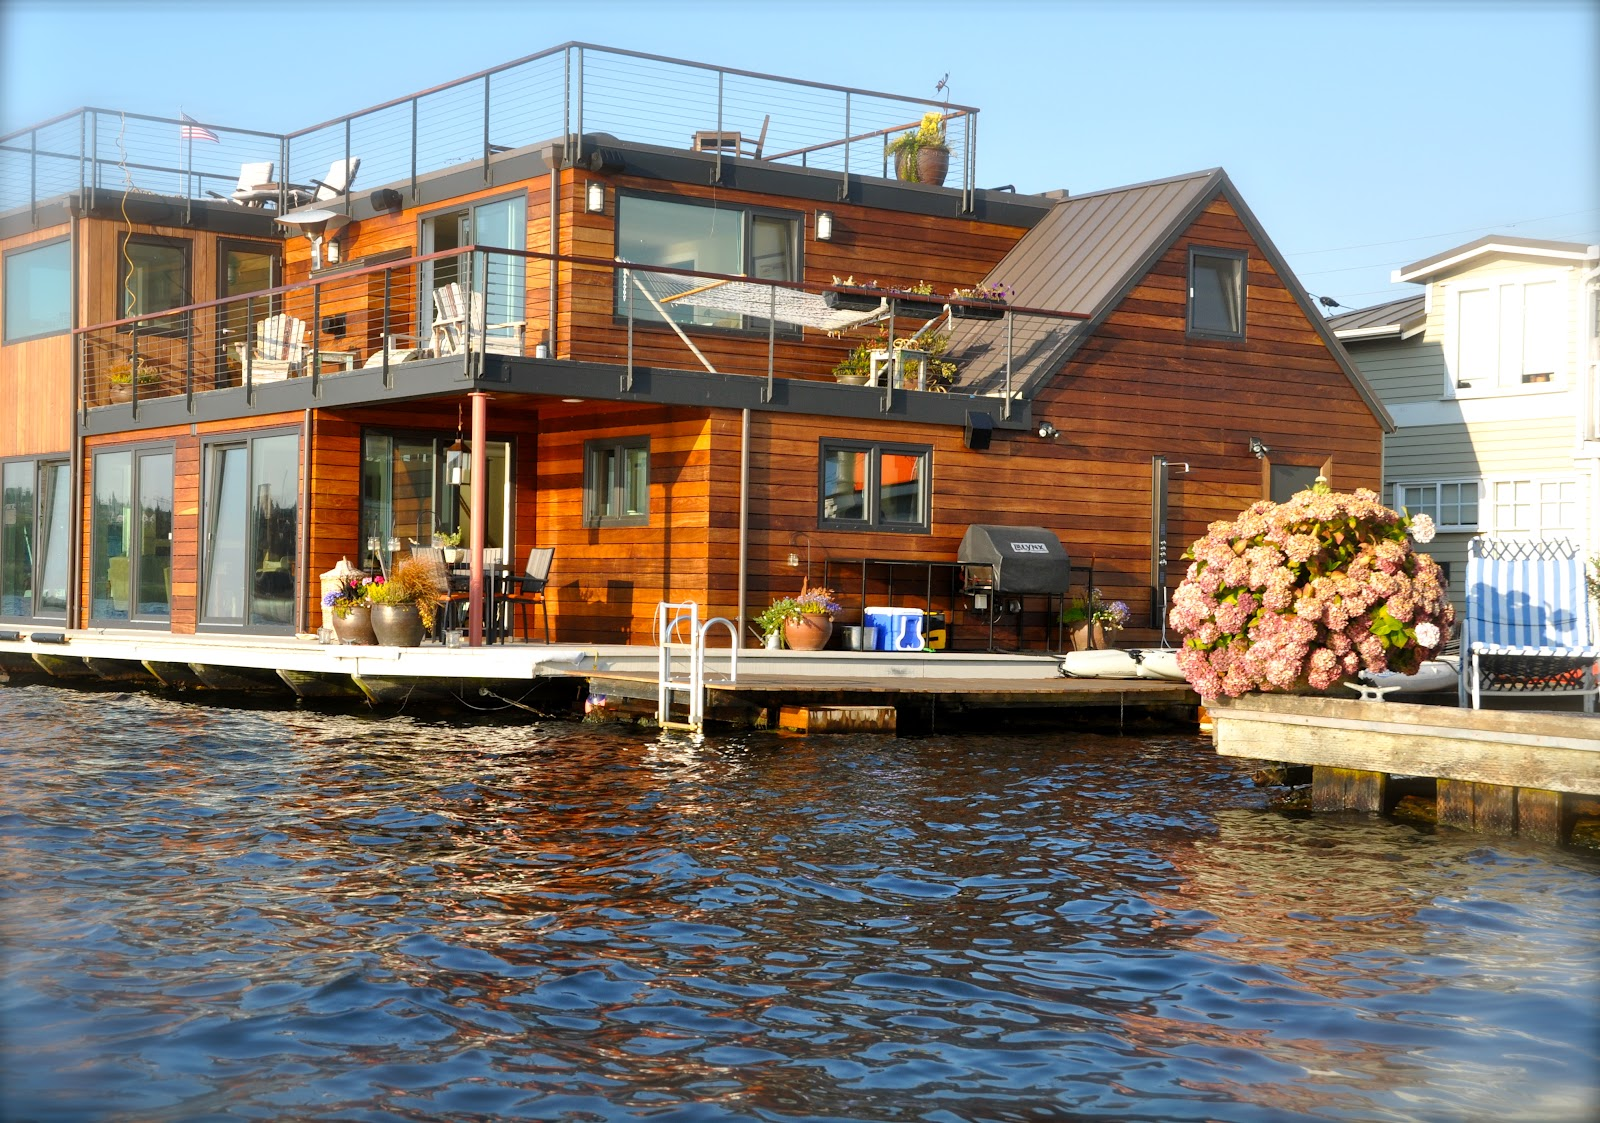 Patina moon floating homes of seattle - Floating house seattle ...